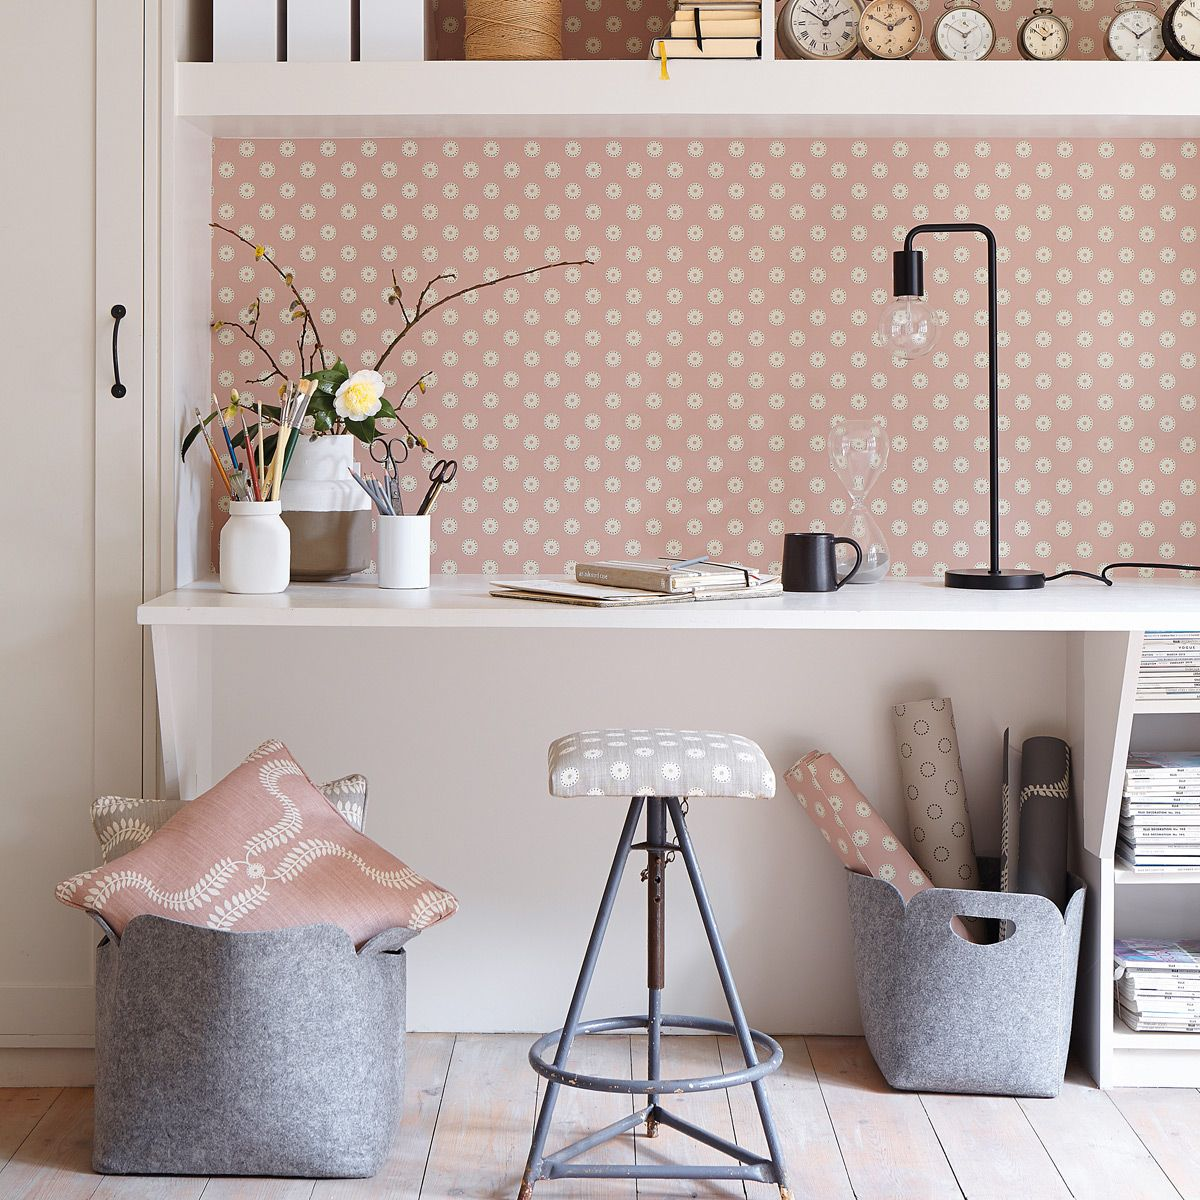 Whether Youu0027re Looking For Home Decor Ideas And Inspiration, Or Are  Searching For Finishing Touches, Pinterest Is Perfect For Any Interiors  Project.